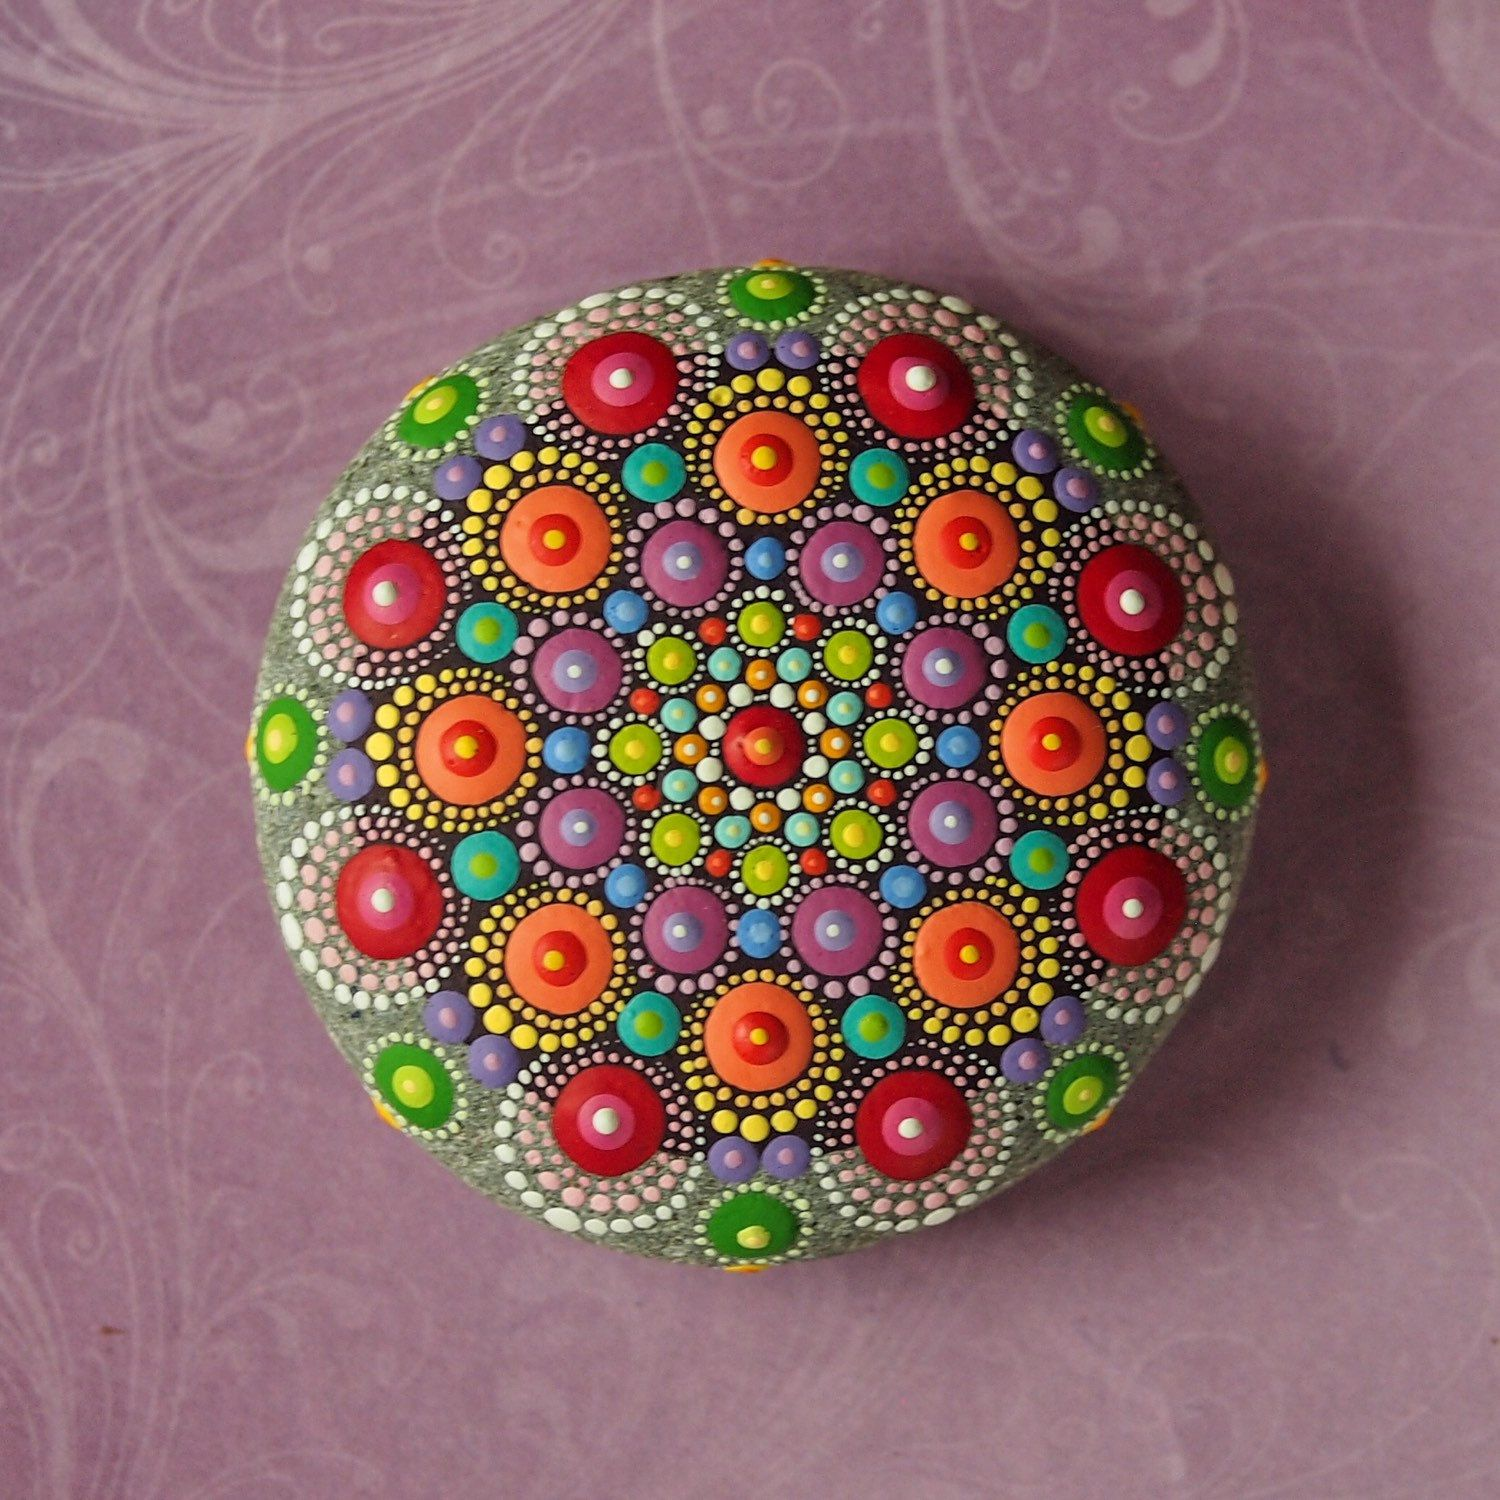 Jewel Drop Mandala Painted Stone hand painted by por ElspethMcLean